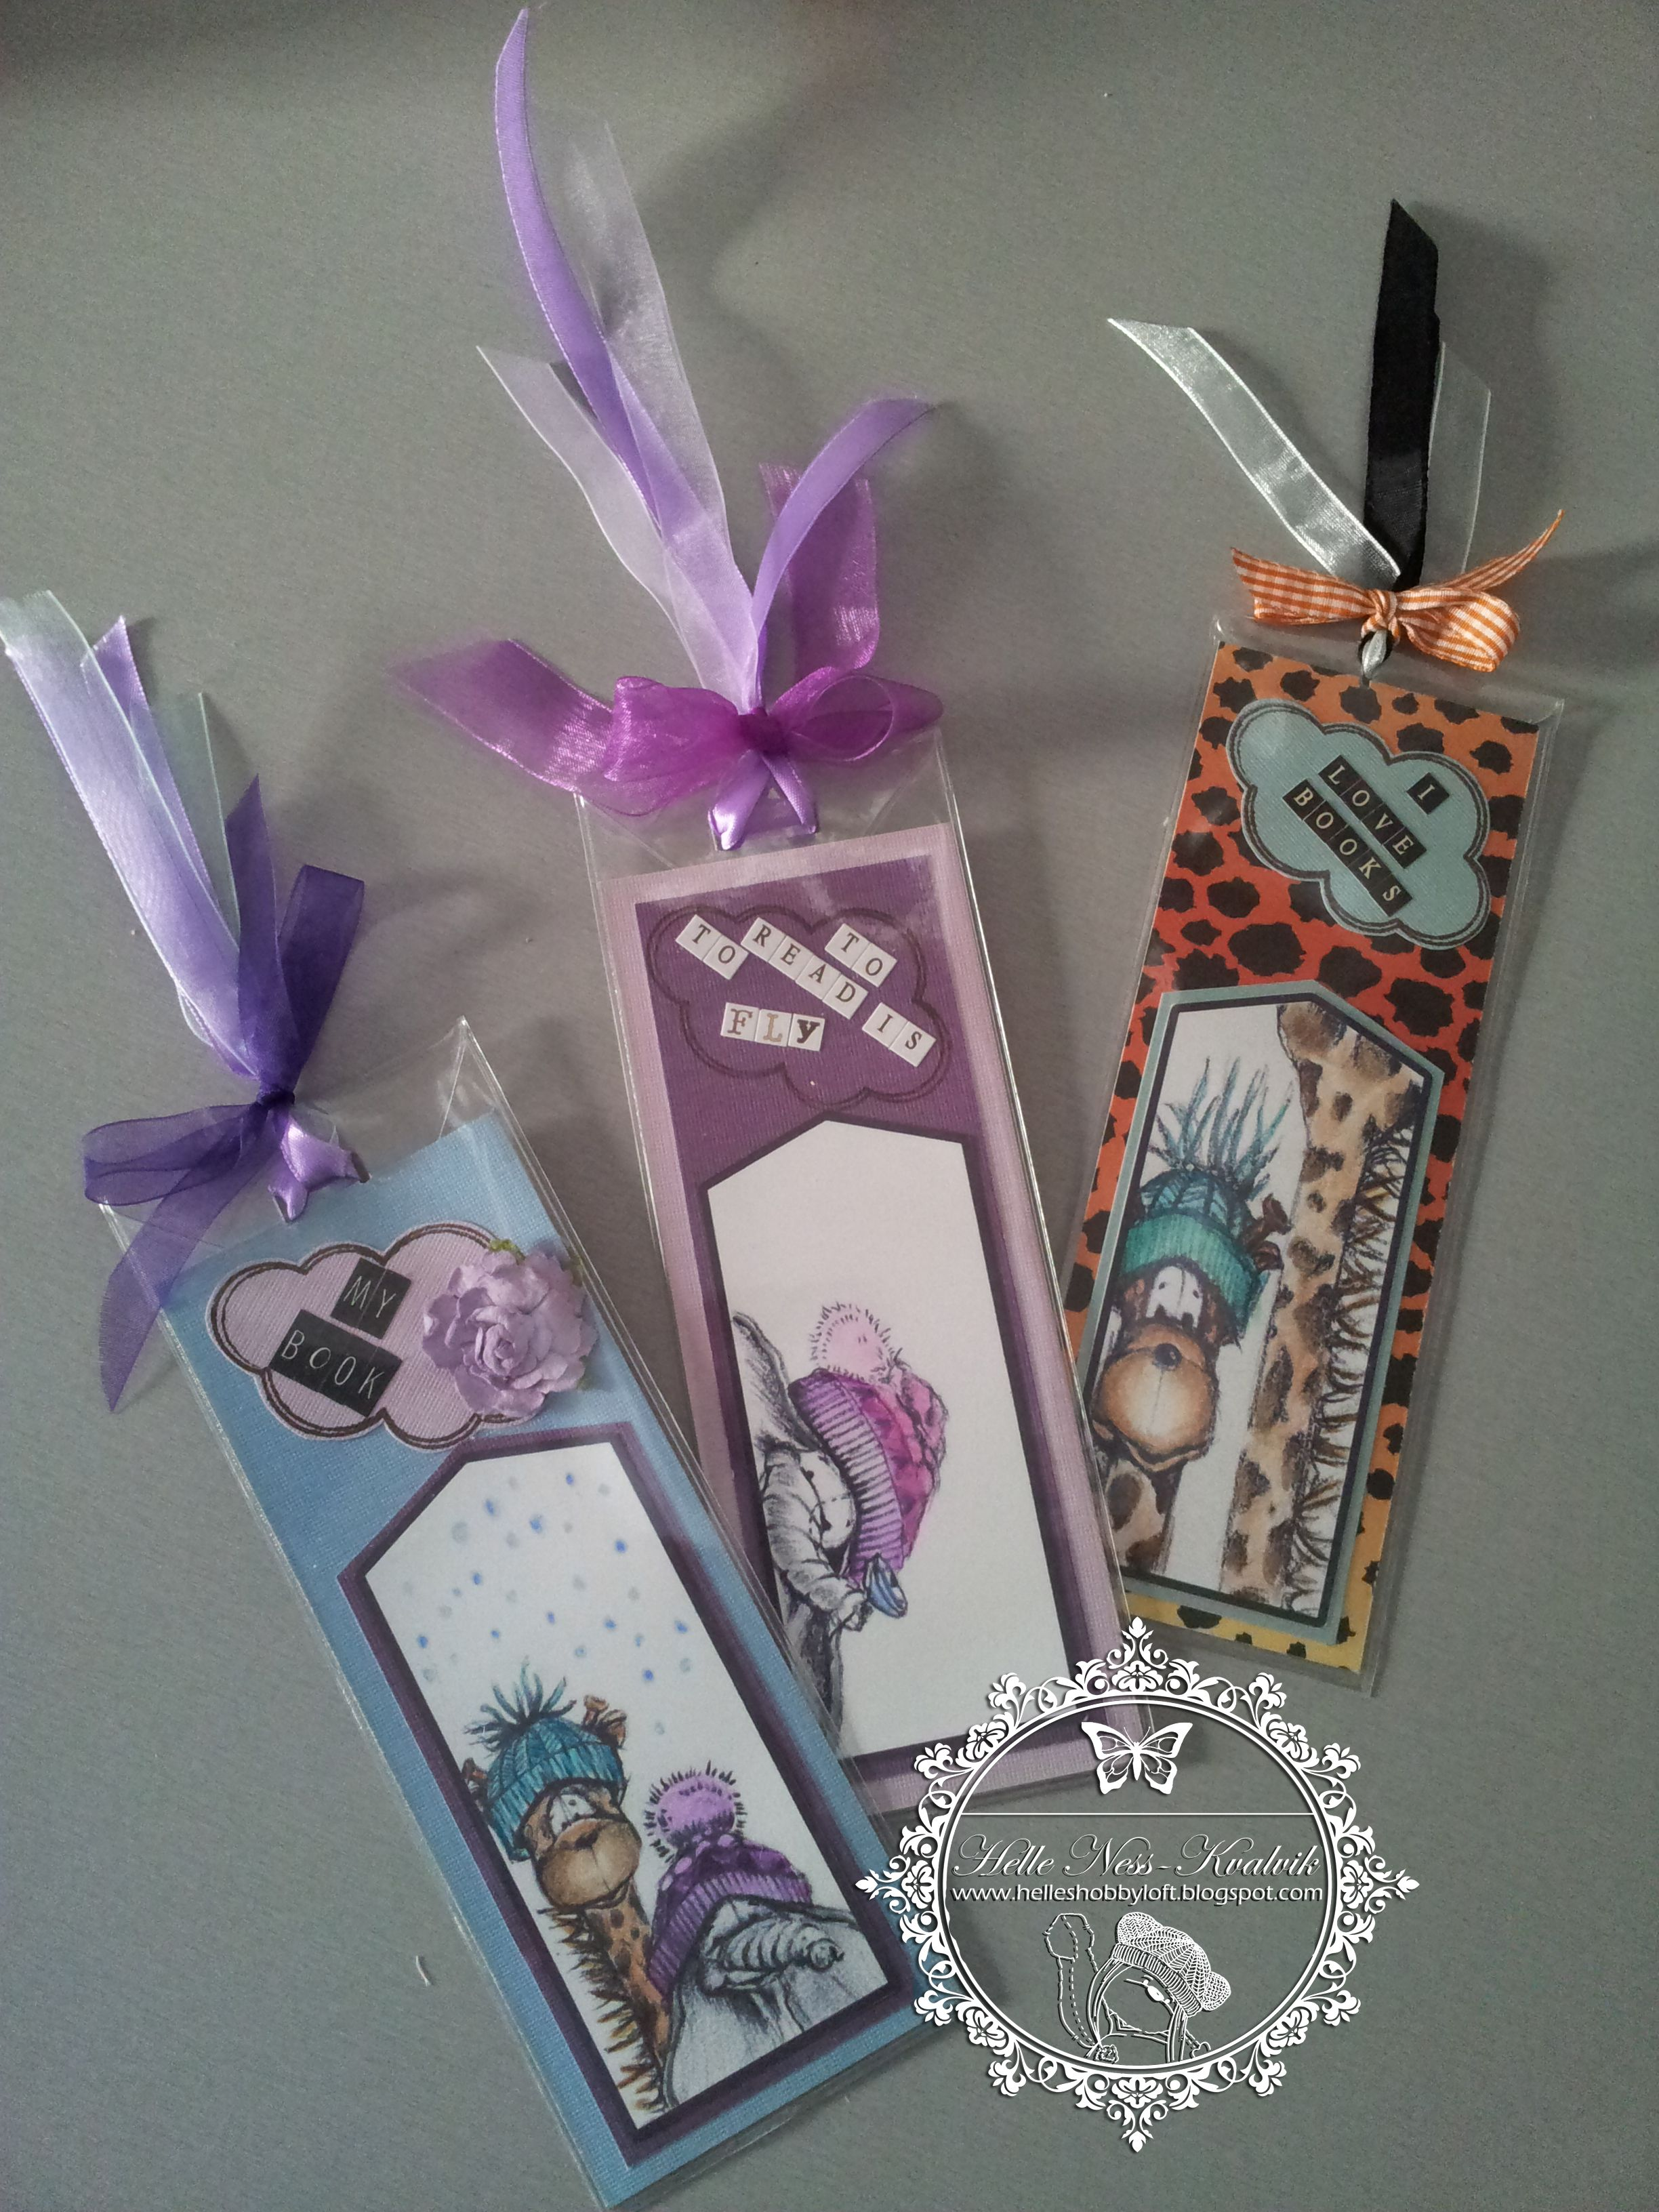 Bookmarks I've made for friends :-)